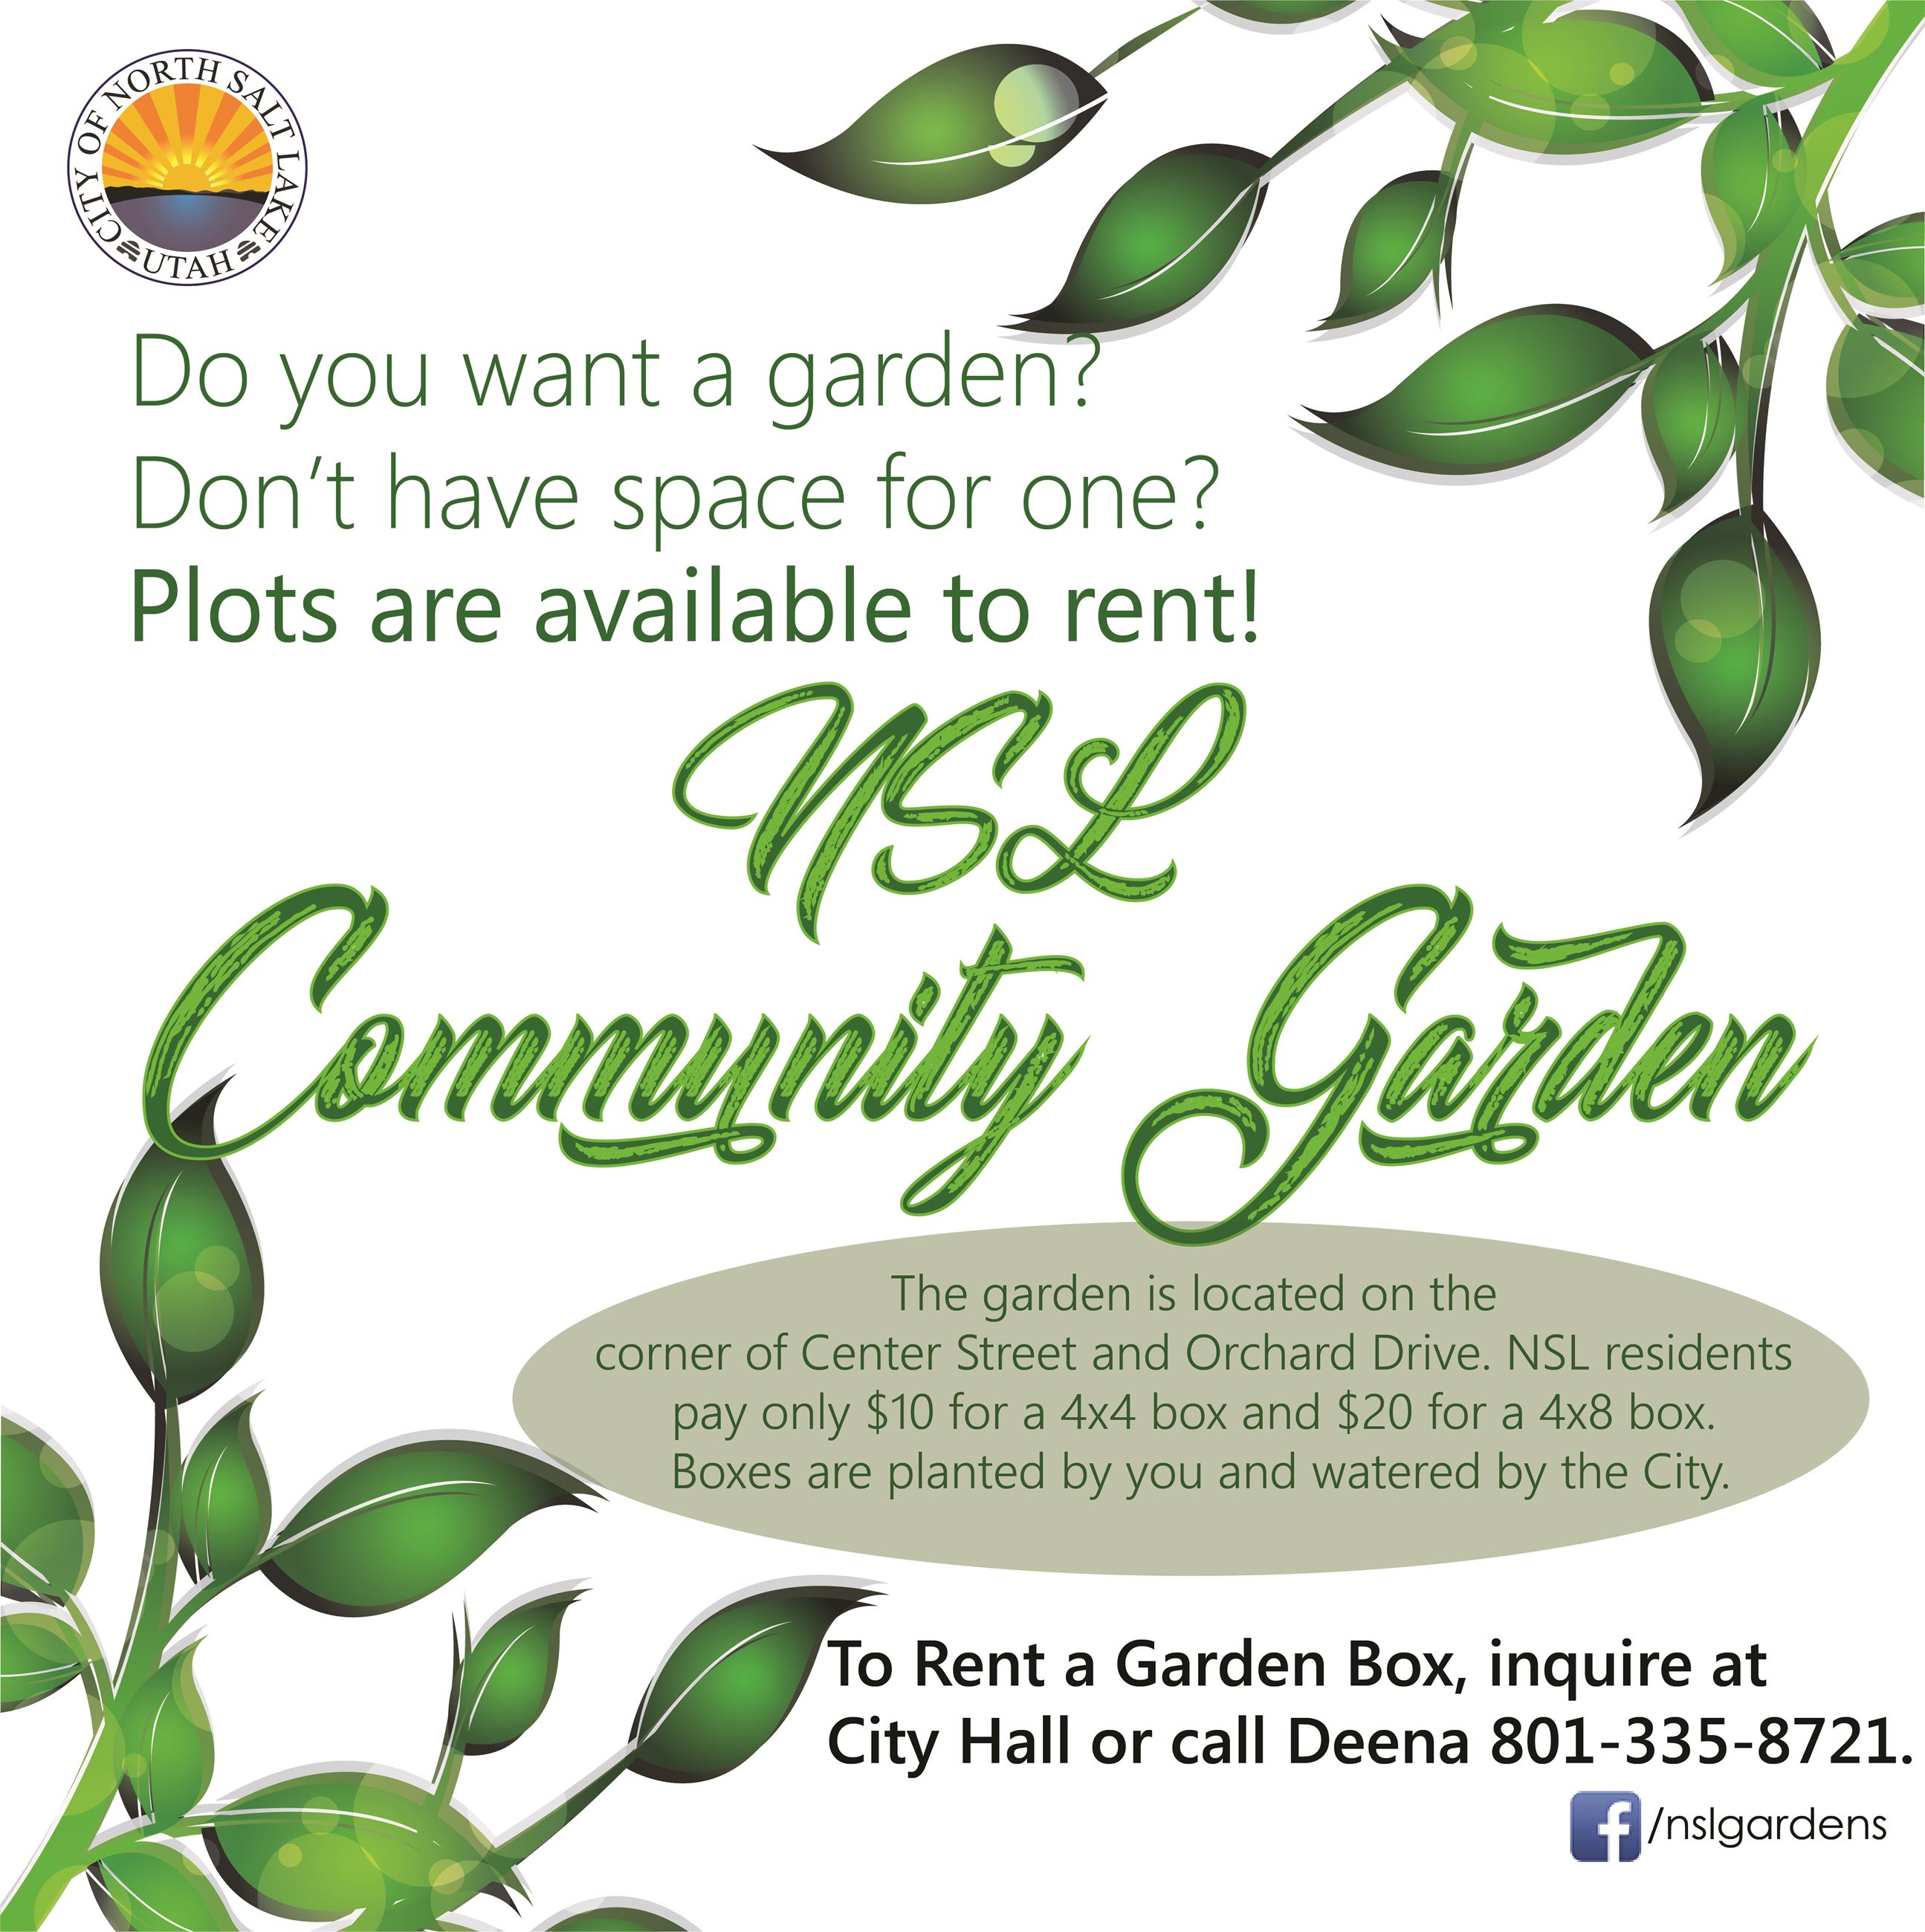 2019 Community Garden plots available Square Instagram